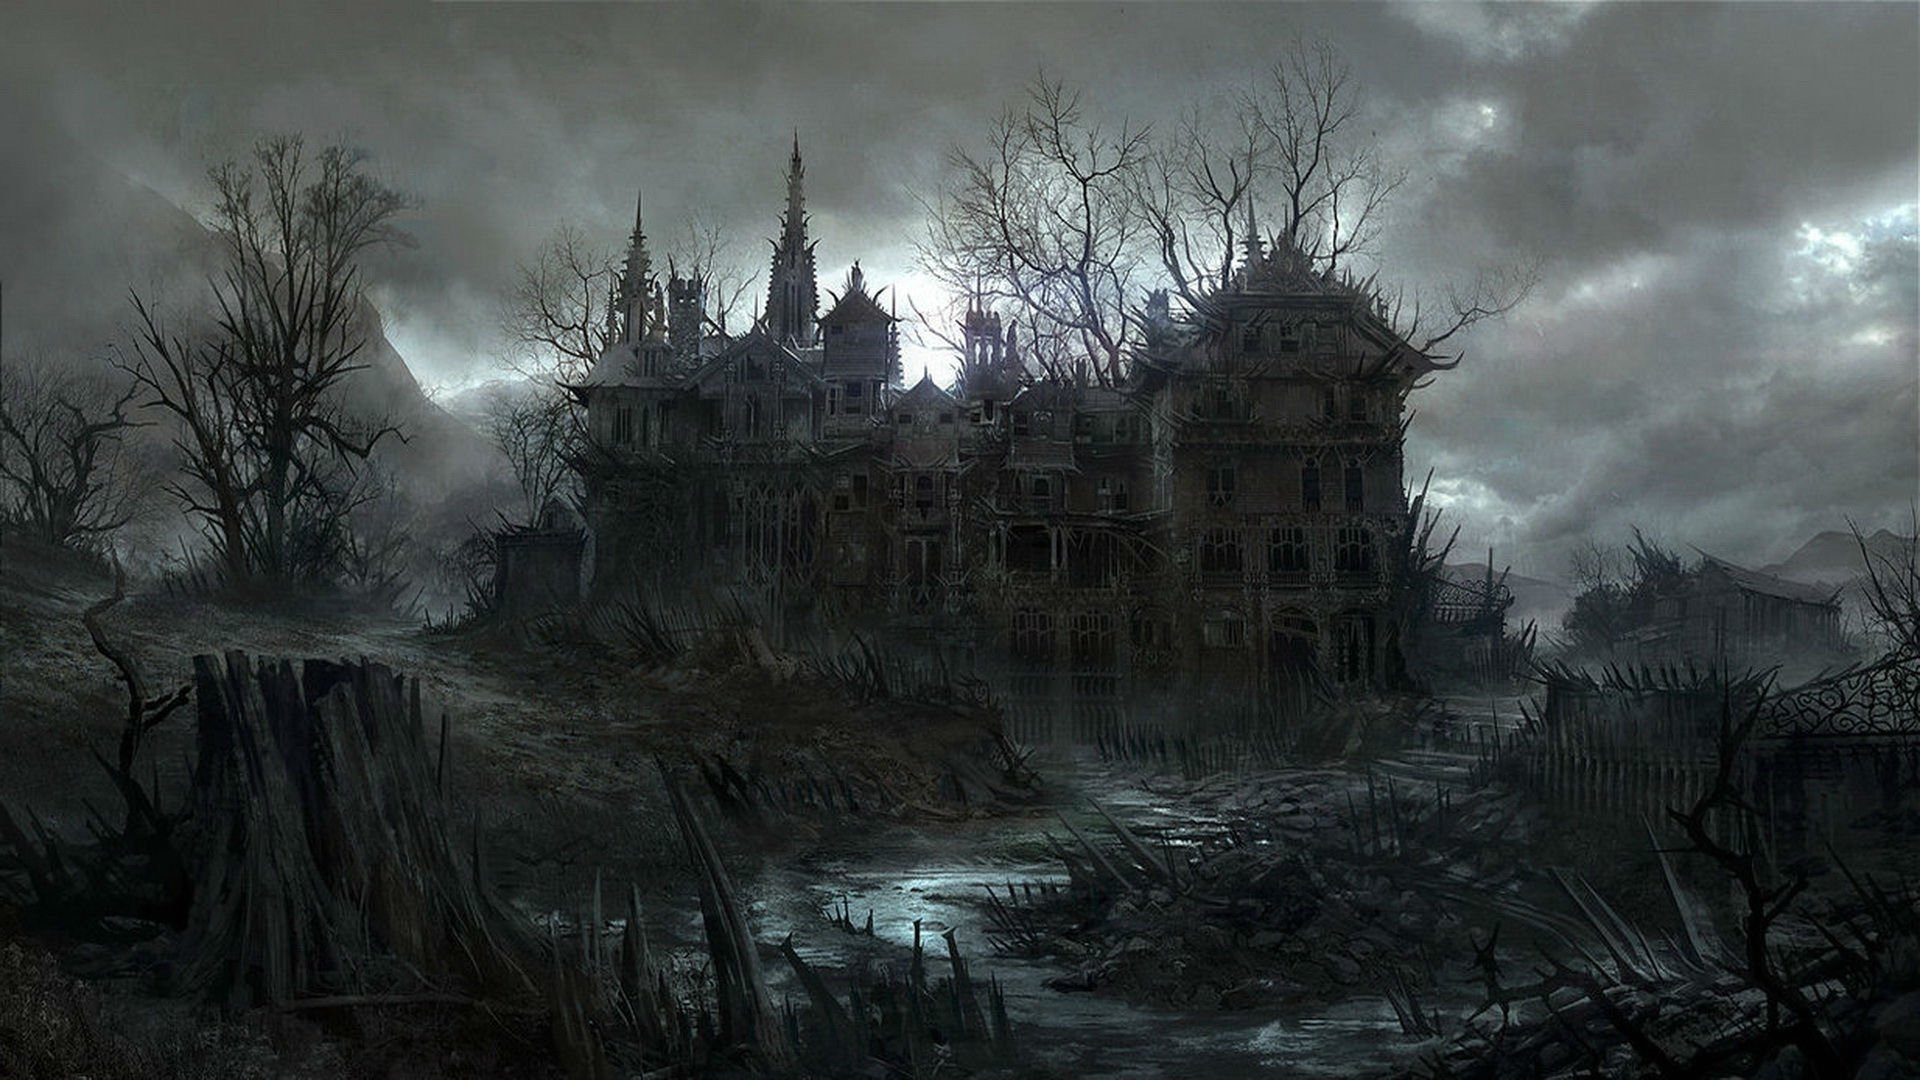 1920x1080 HALLOWEEN dark haunted house spooky wallpaper |  | 497956 .